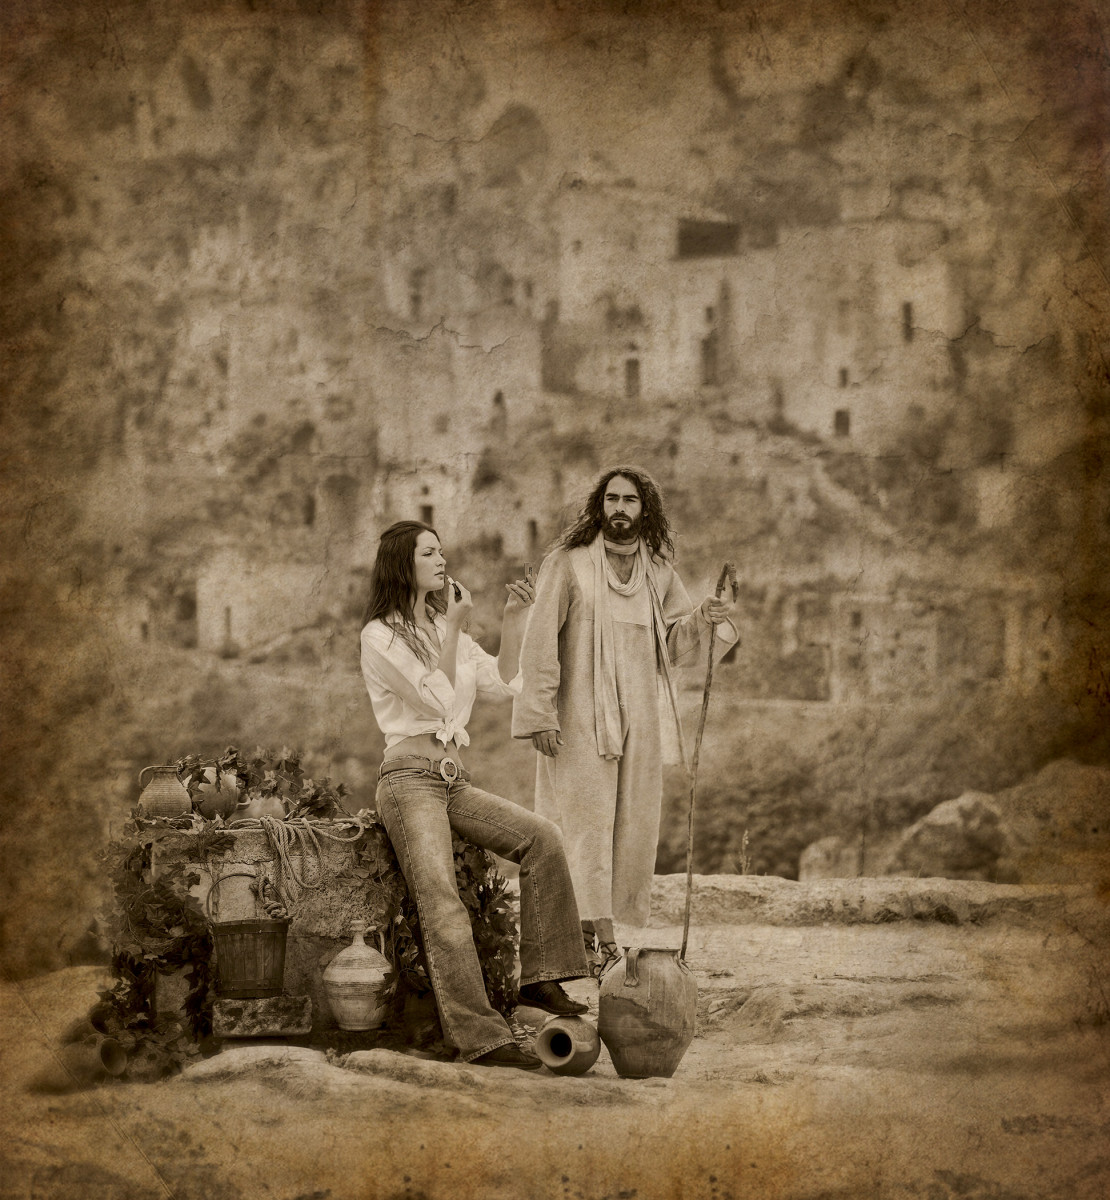 Compassion. There's often more to the story than what first meets the eye. Jesus traveling through the region of Samaria where He encountered a woman alone at the local well